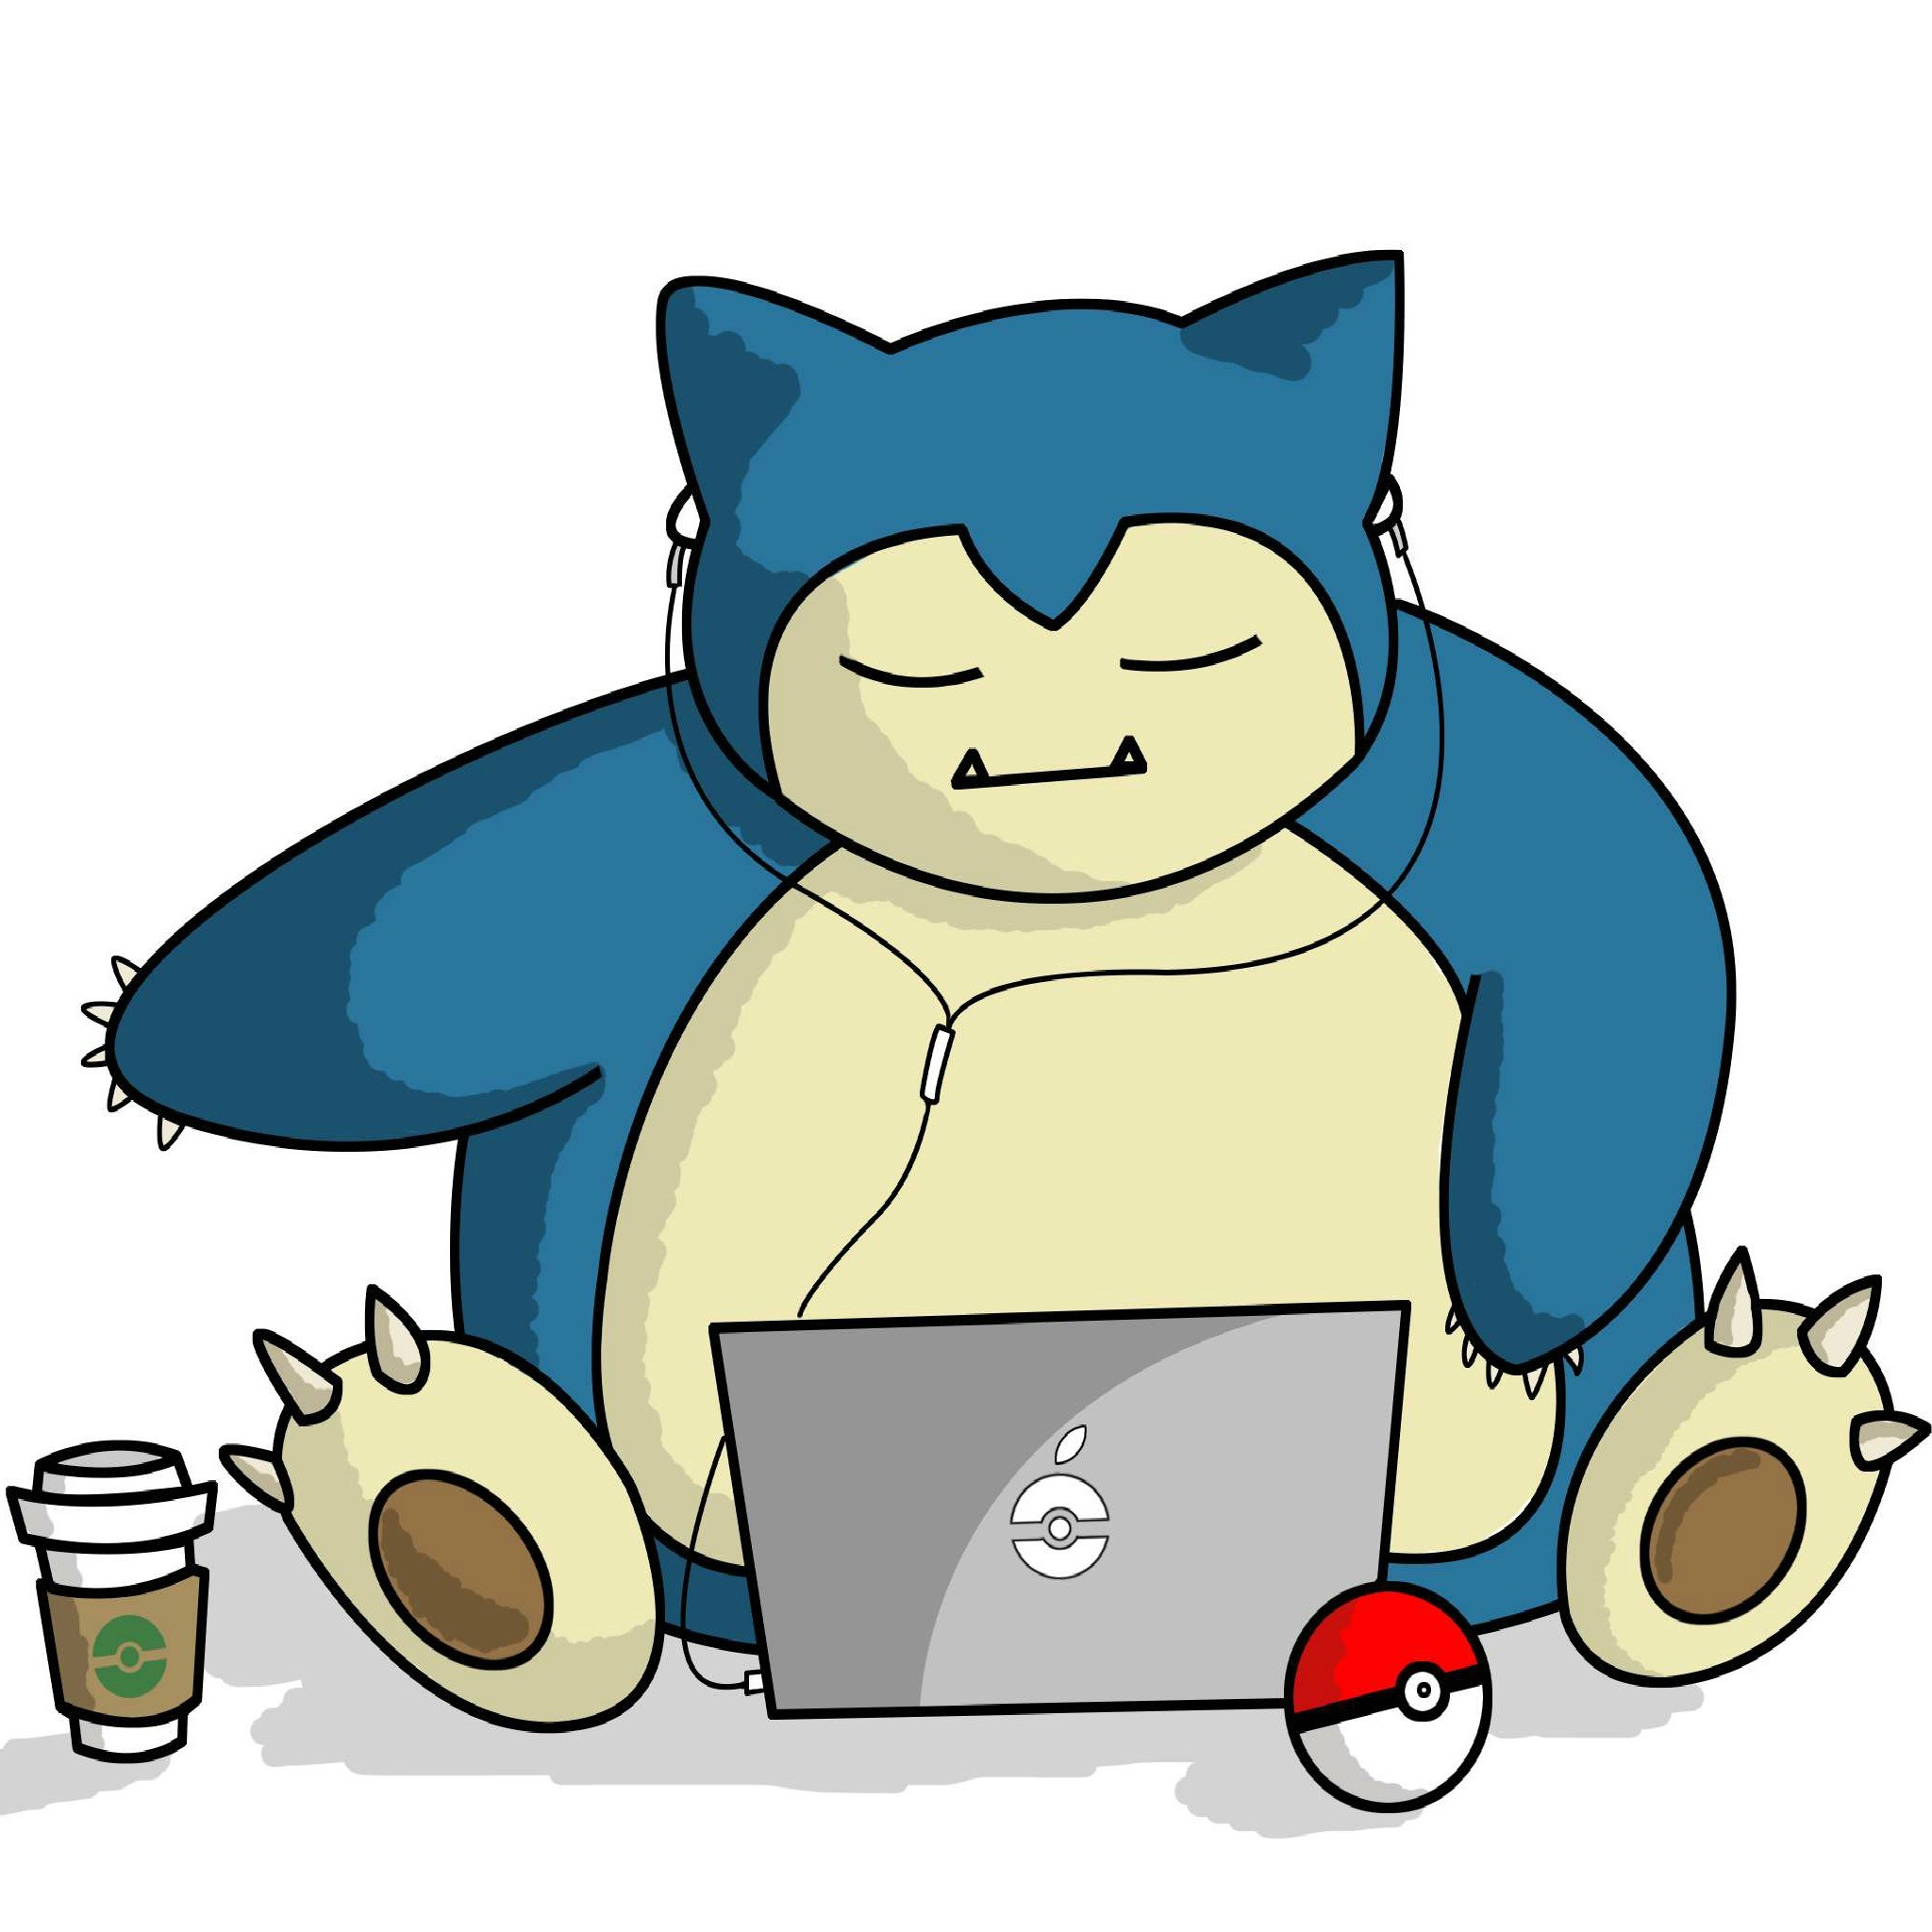 Snorlax with Laptop – Tap to see more Pokemon Snorlax wallpapers! @mobile9